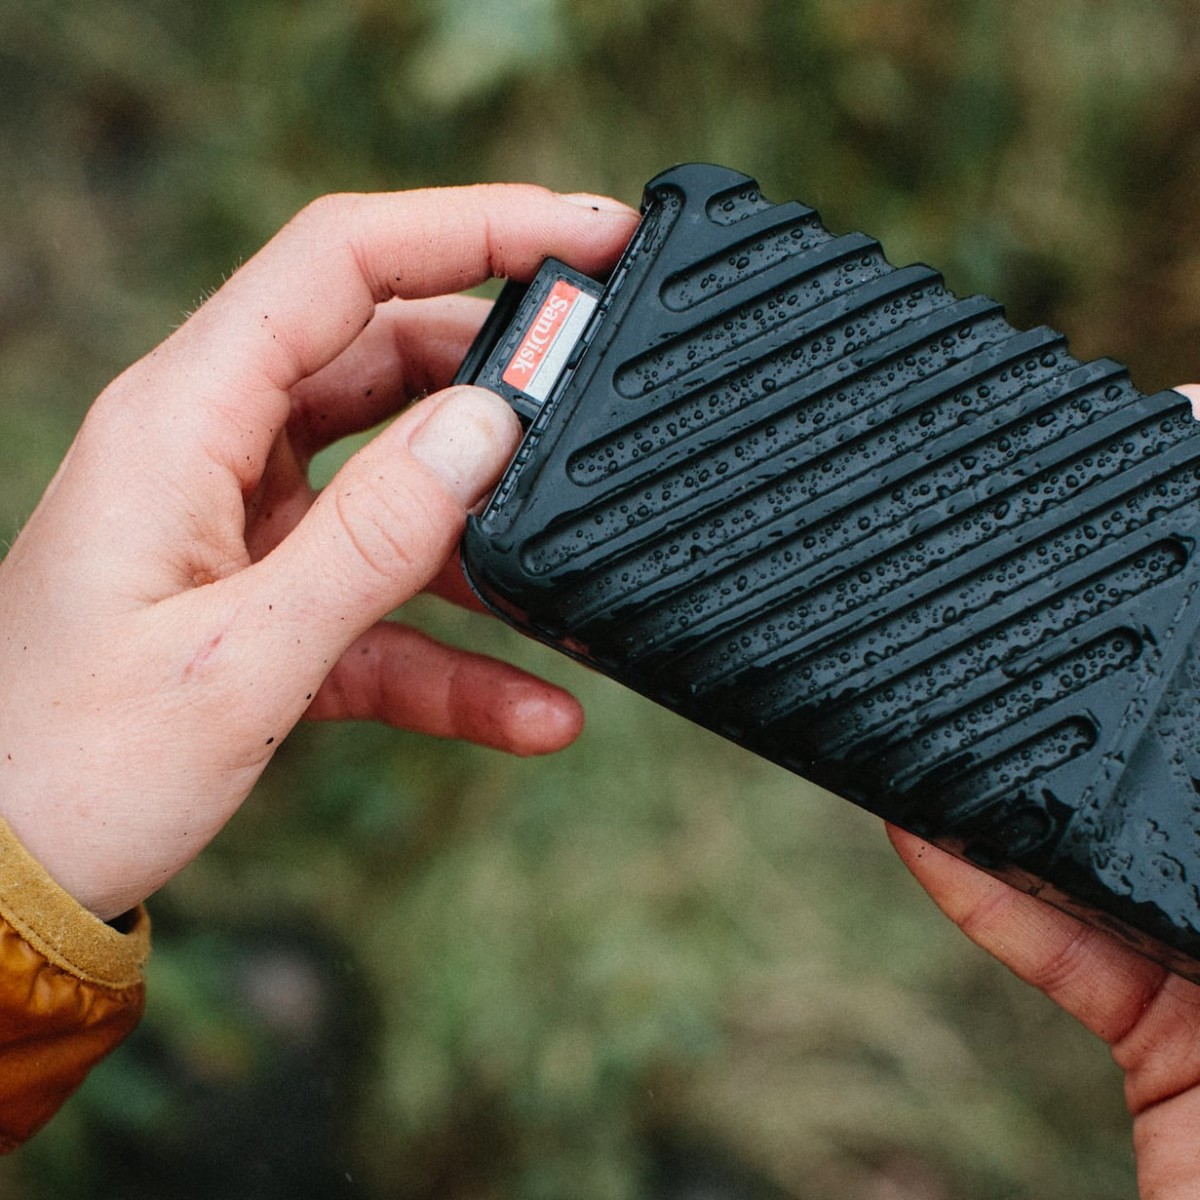 GNARBOX 2.0 SSD Rugged Backup Device helps you manage files in the field without a laptop